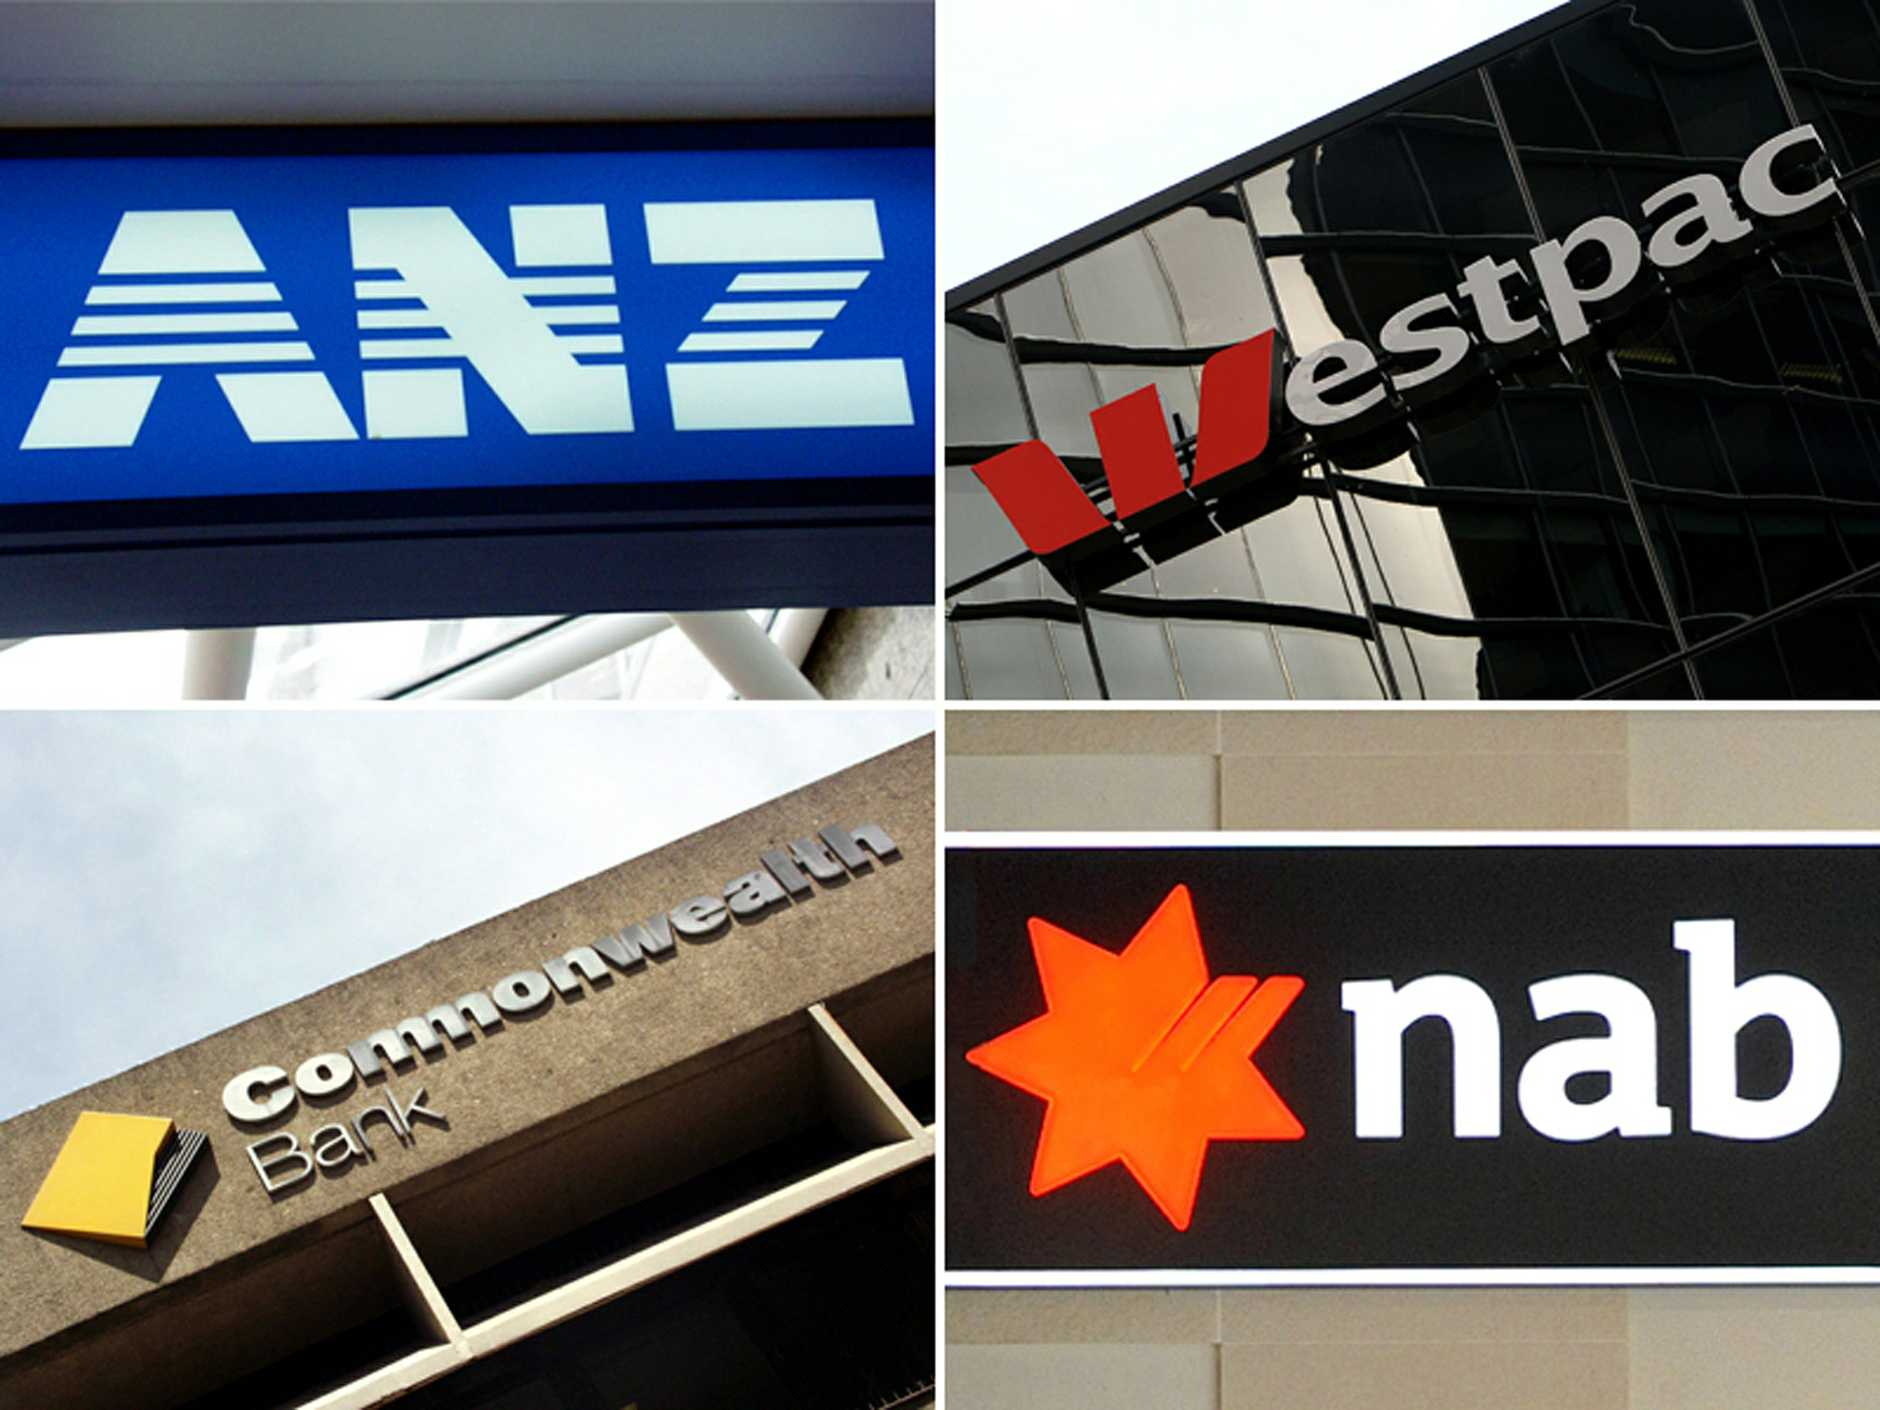 Australia's big four banks provide different levels of support for people in domestic violence crisis.